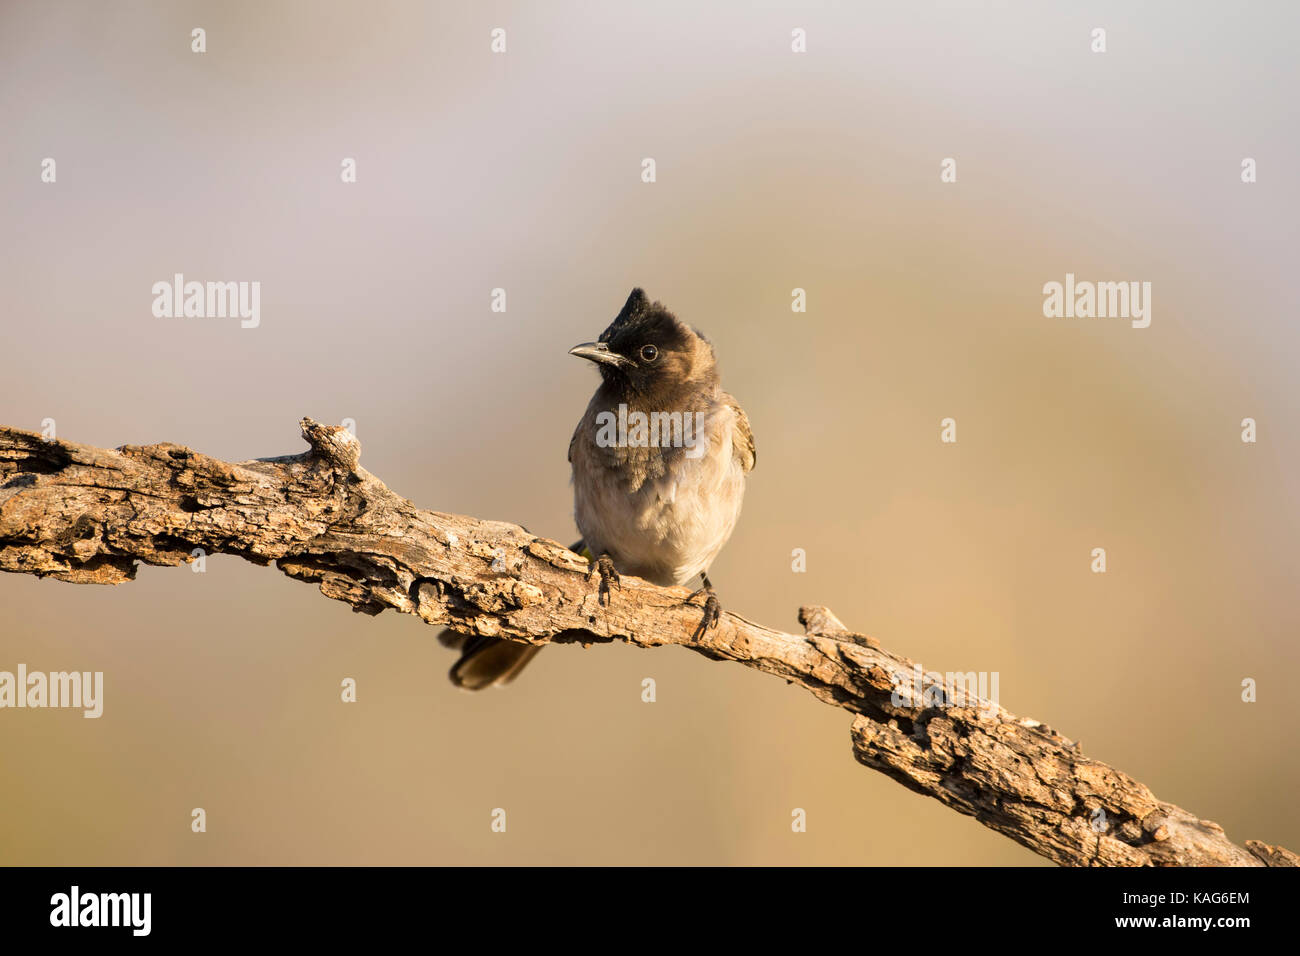 Dark-Capped (Black eyed) Bulbul Pycnonotus tricolor perched on a plain branch - Stock Image